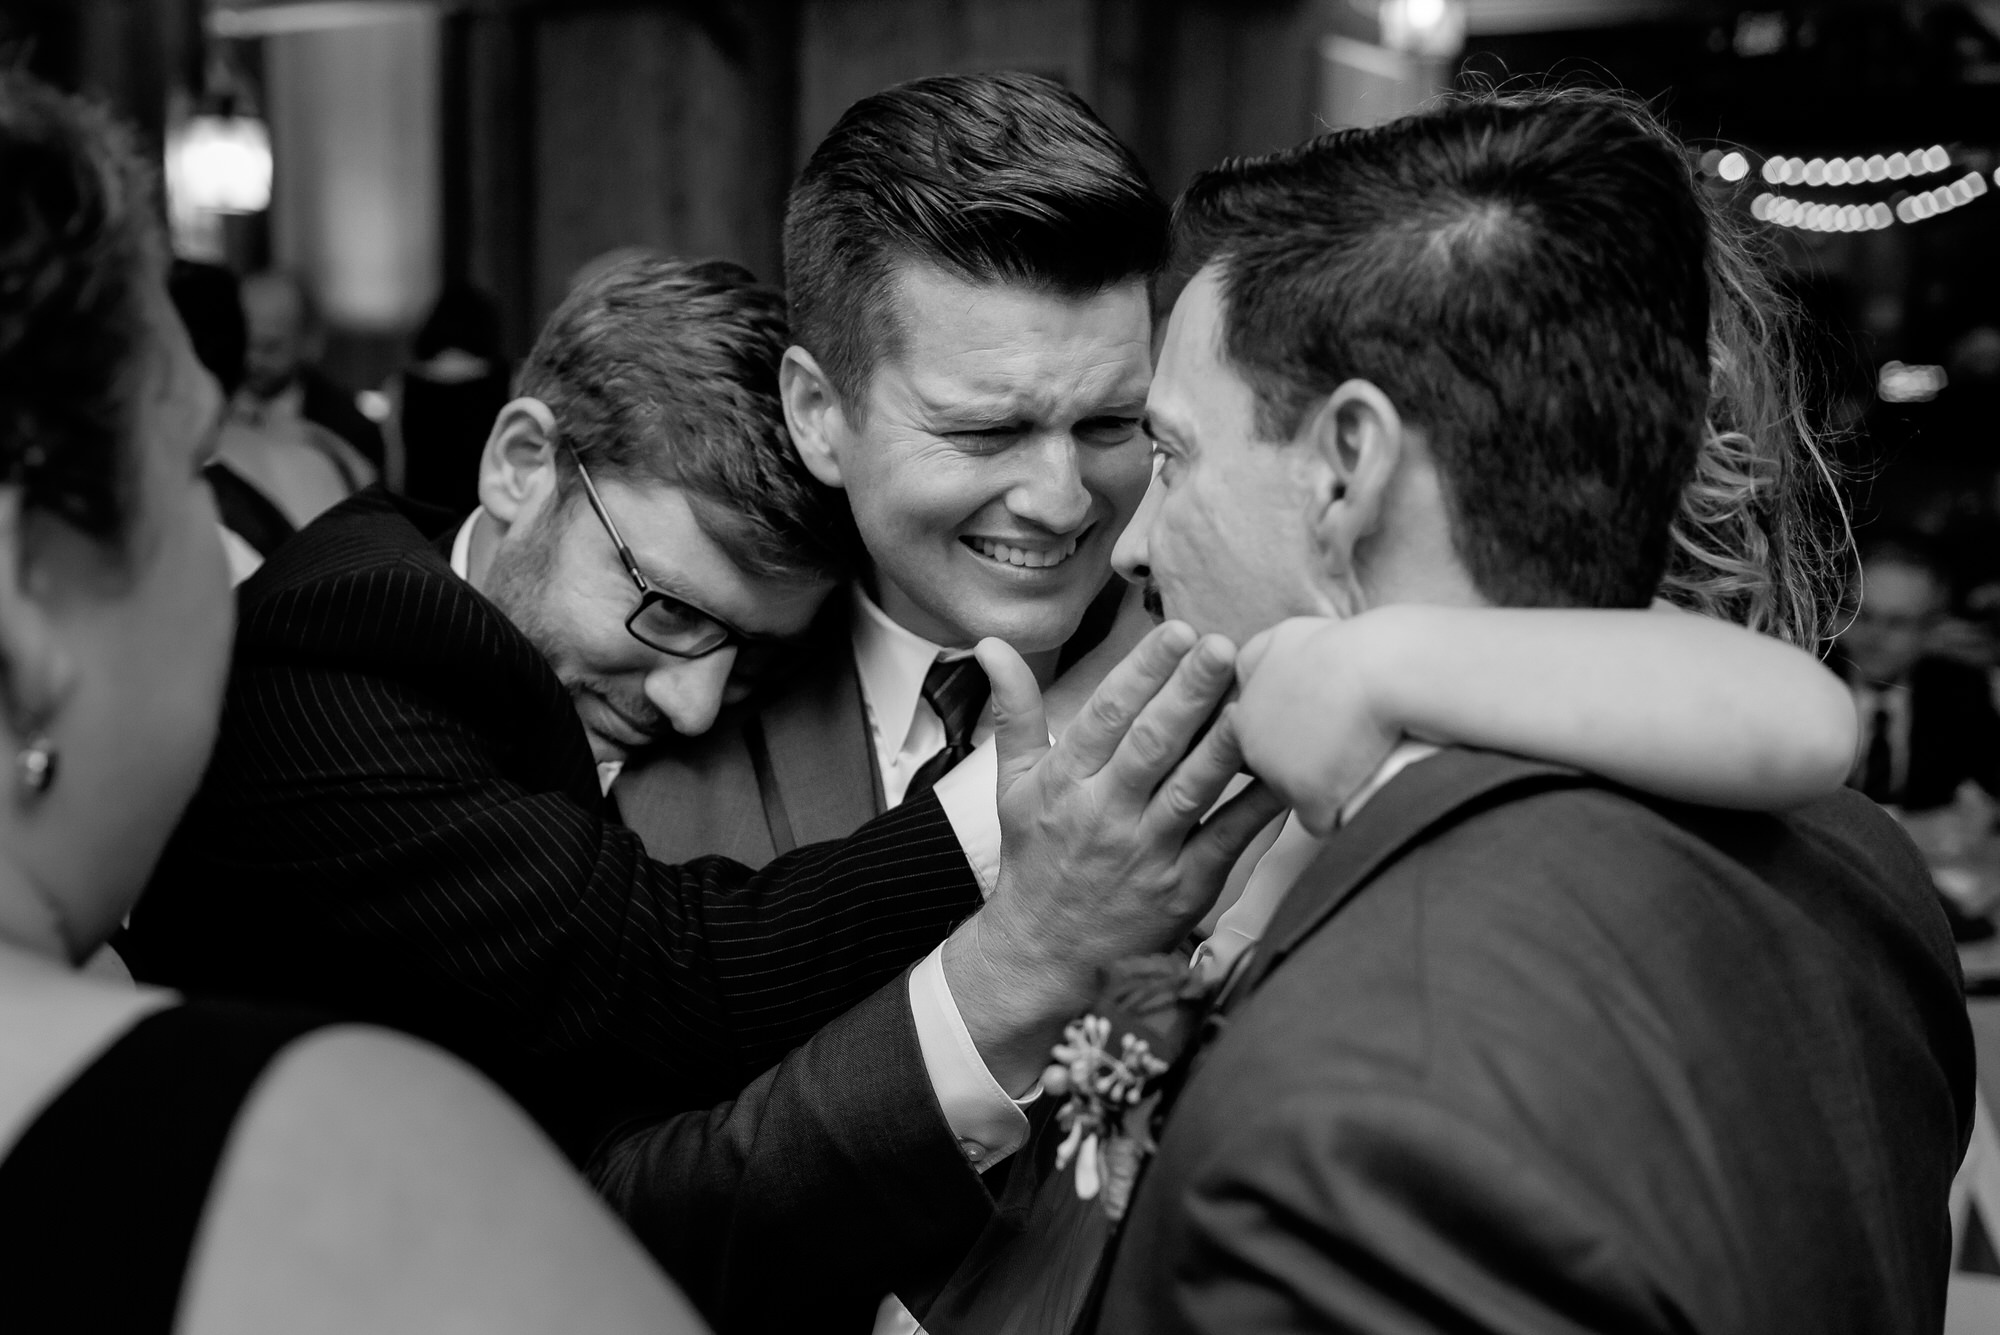 Moment with groomsmen hugging photo by Tyler Wirken - Kansas City